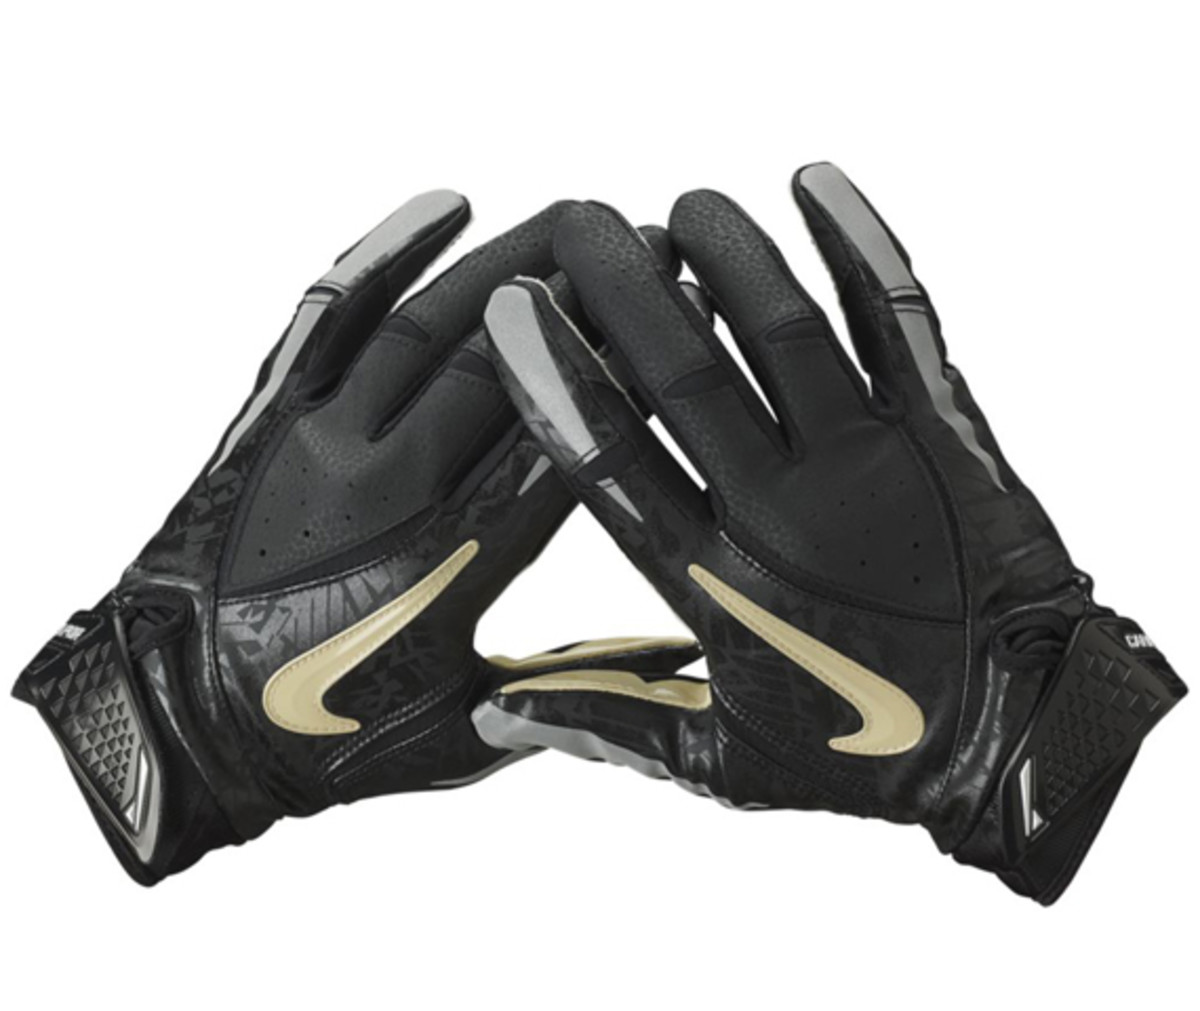 Nike-College-Rivalry-Vapor-Jet-Football-Gloves-02